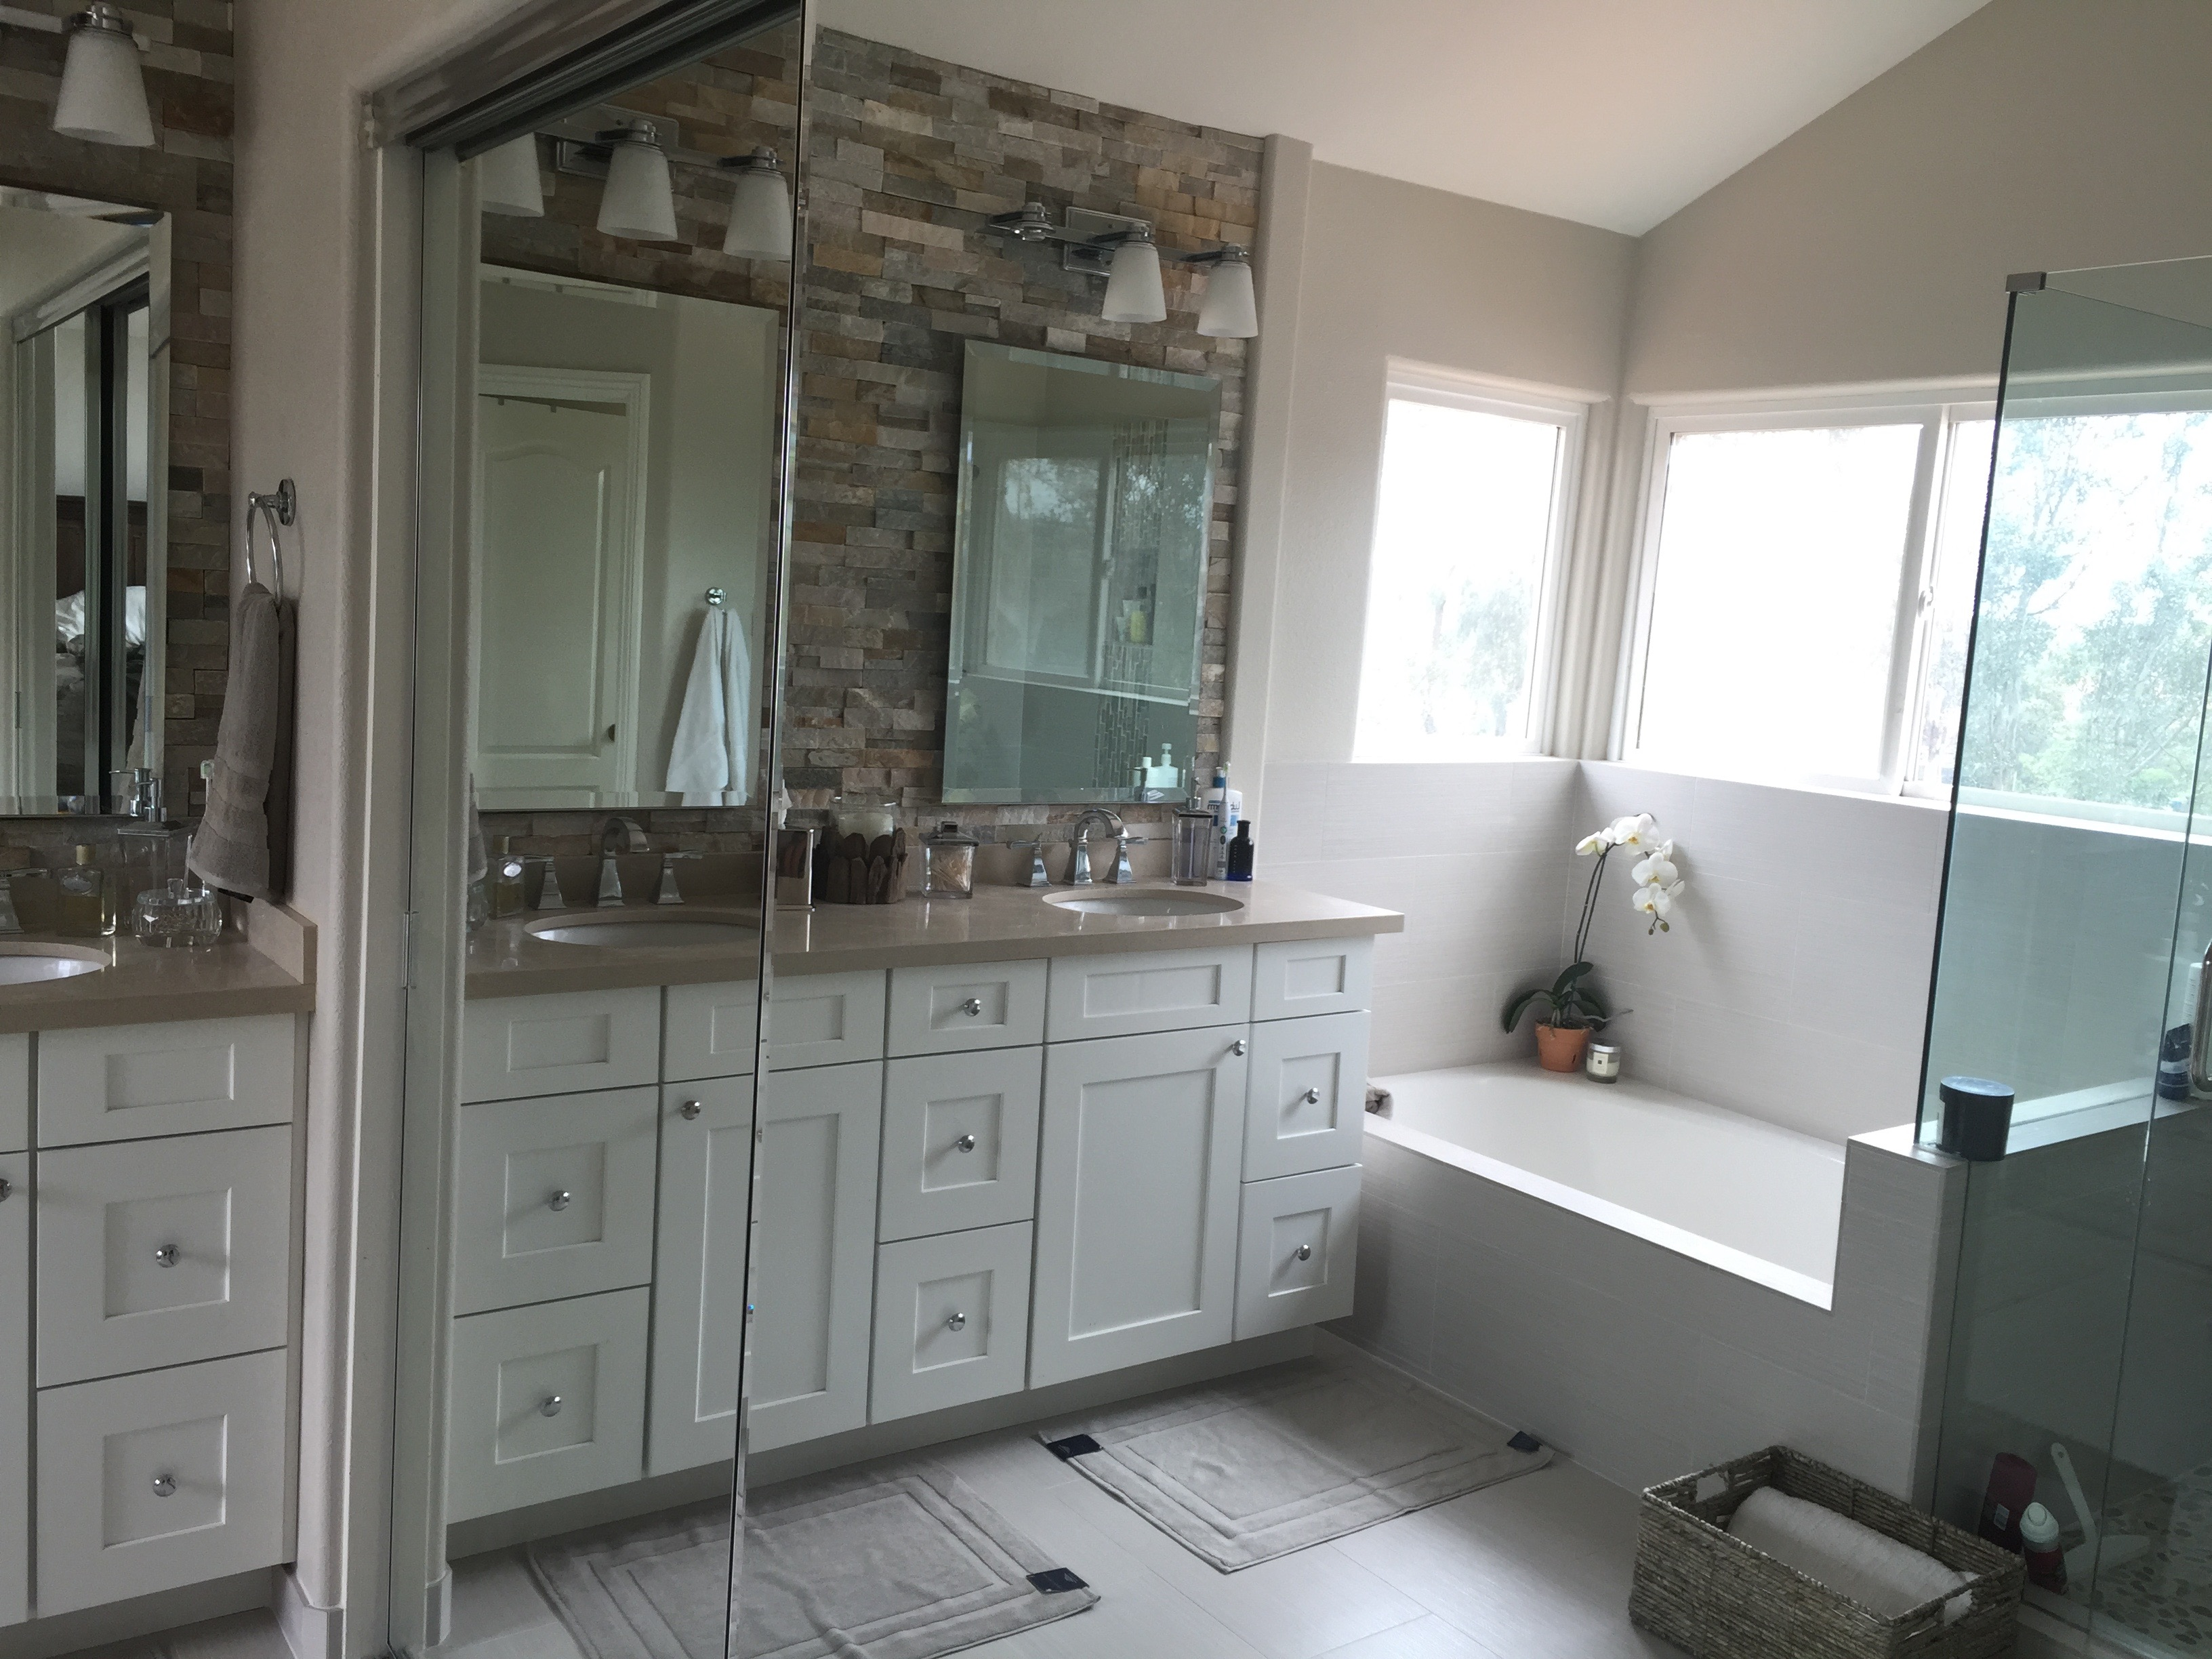 Bathroom Renovation Company Gives Tips For An Inviting Guest Bath - Bathroom renovation company